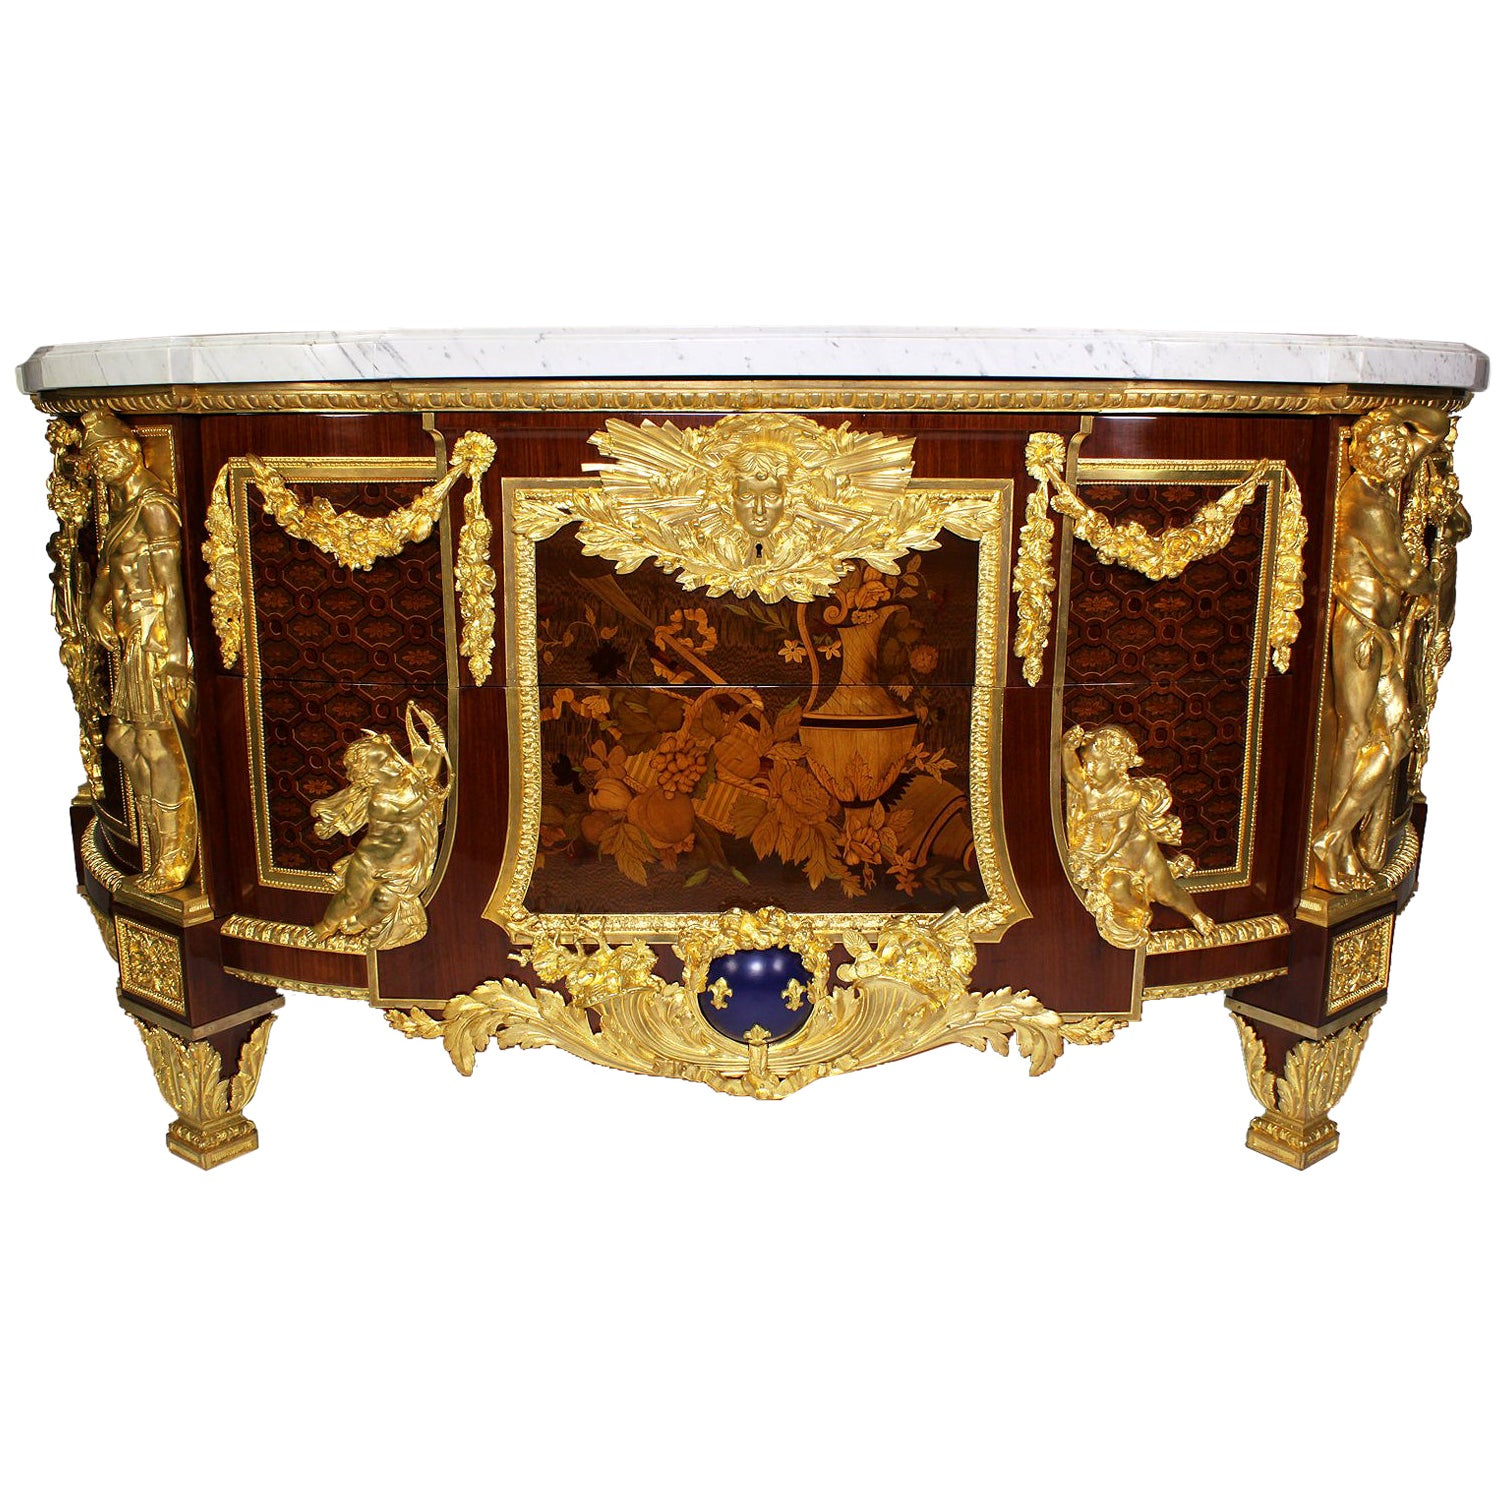 French 19th Century Louis XVI Style Marquetry and Gilt-Bronze Armorial Commode